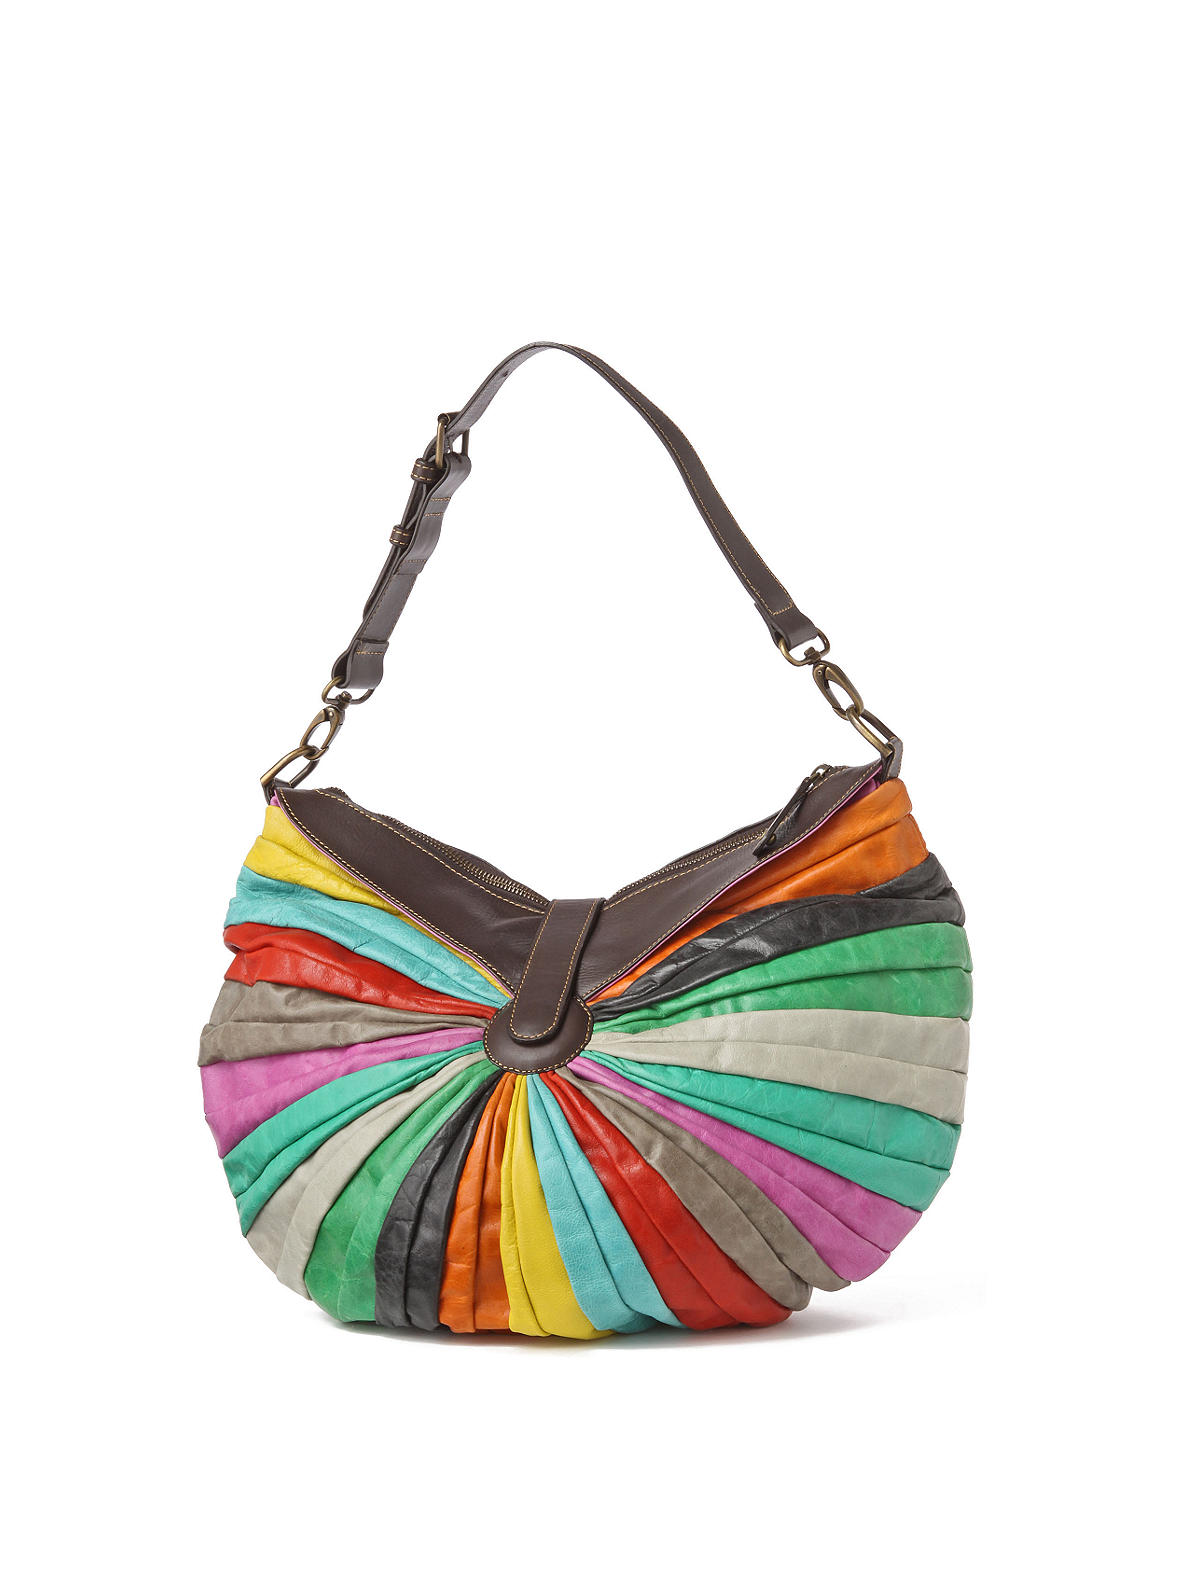 Circus Act Bag - Anthropologie.com :  handbag designer anthropologie bag